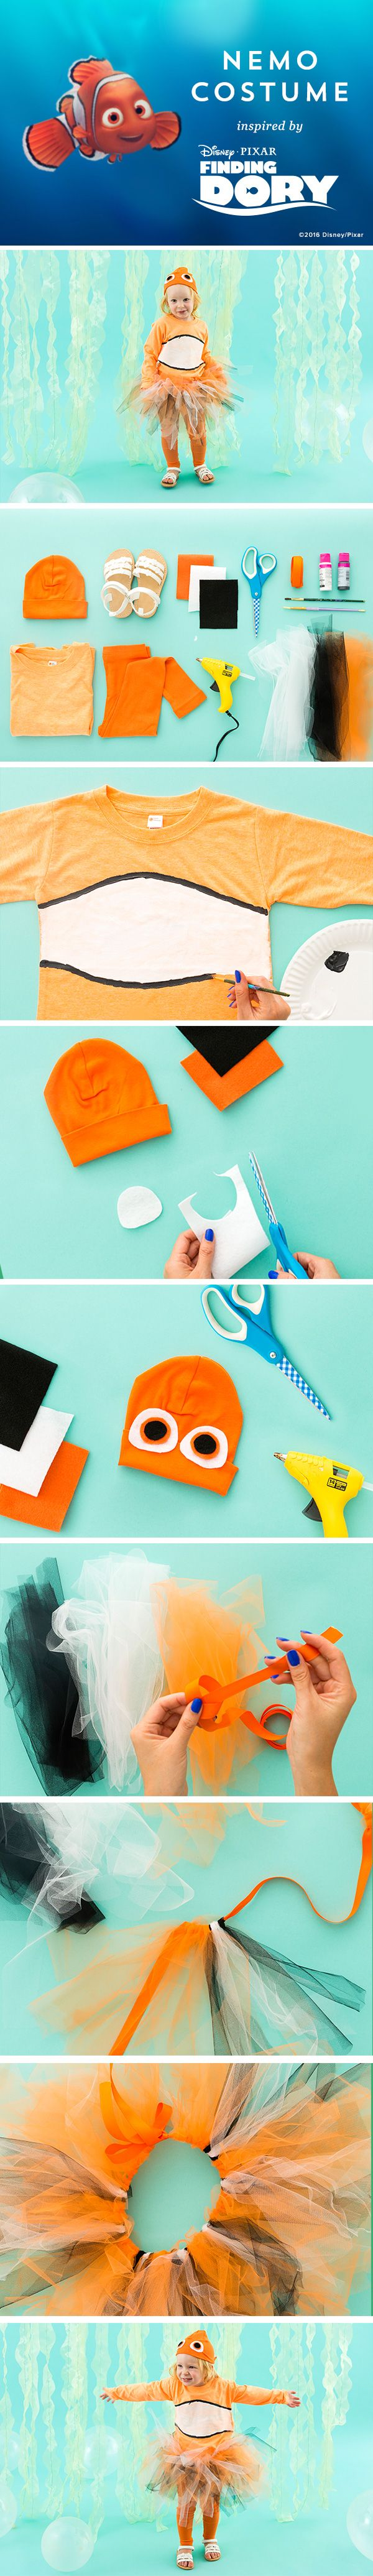 This DIY Nemo Halloween costume will melt your heart! The whole family can even join in as Dory and Hank with more Finding Dory themed DIY costumes.